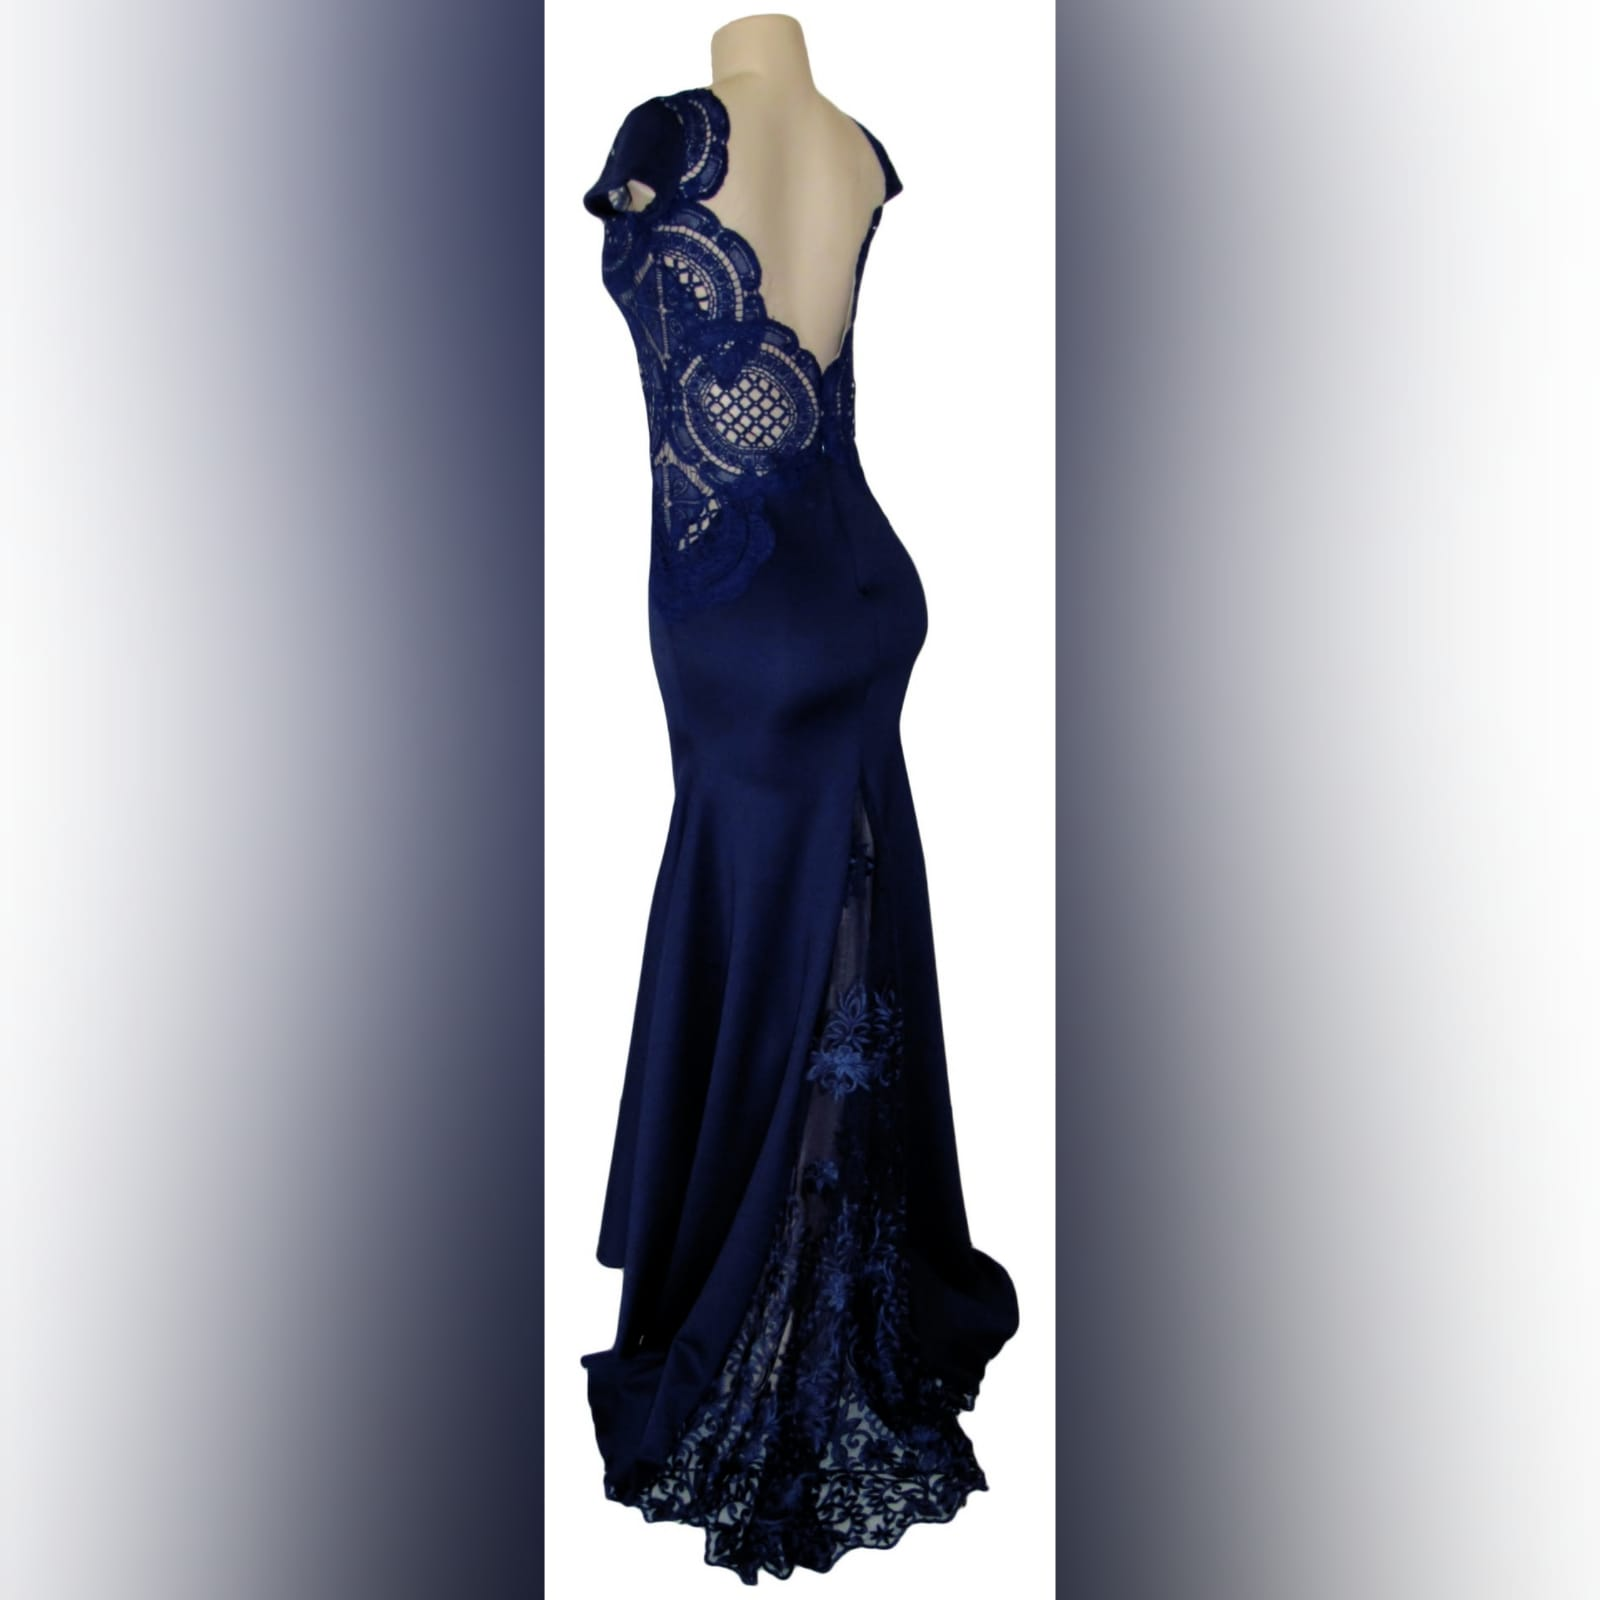 Navy blue long flowy dress with lace bodice 8 navy blue long flowy dress with lace bodice, v neckline & low v open back with a slit.